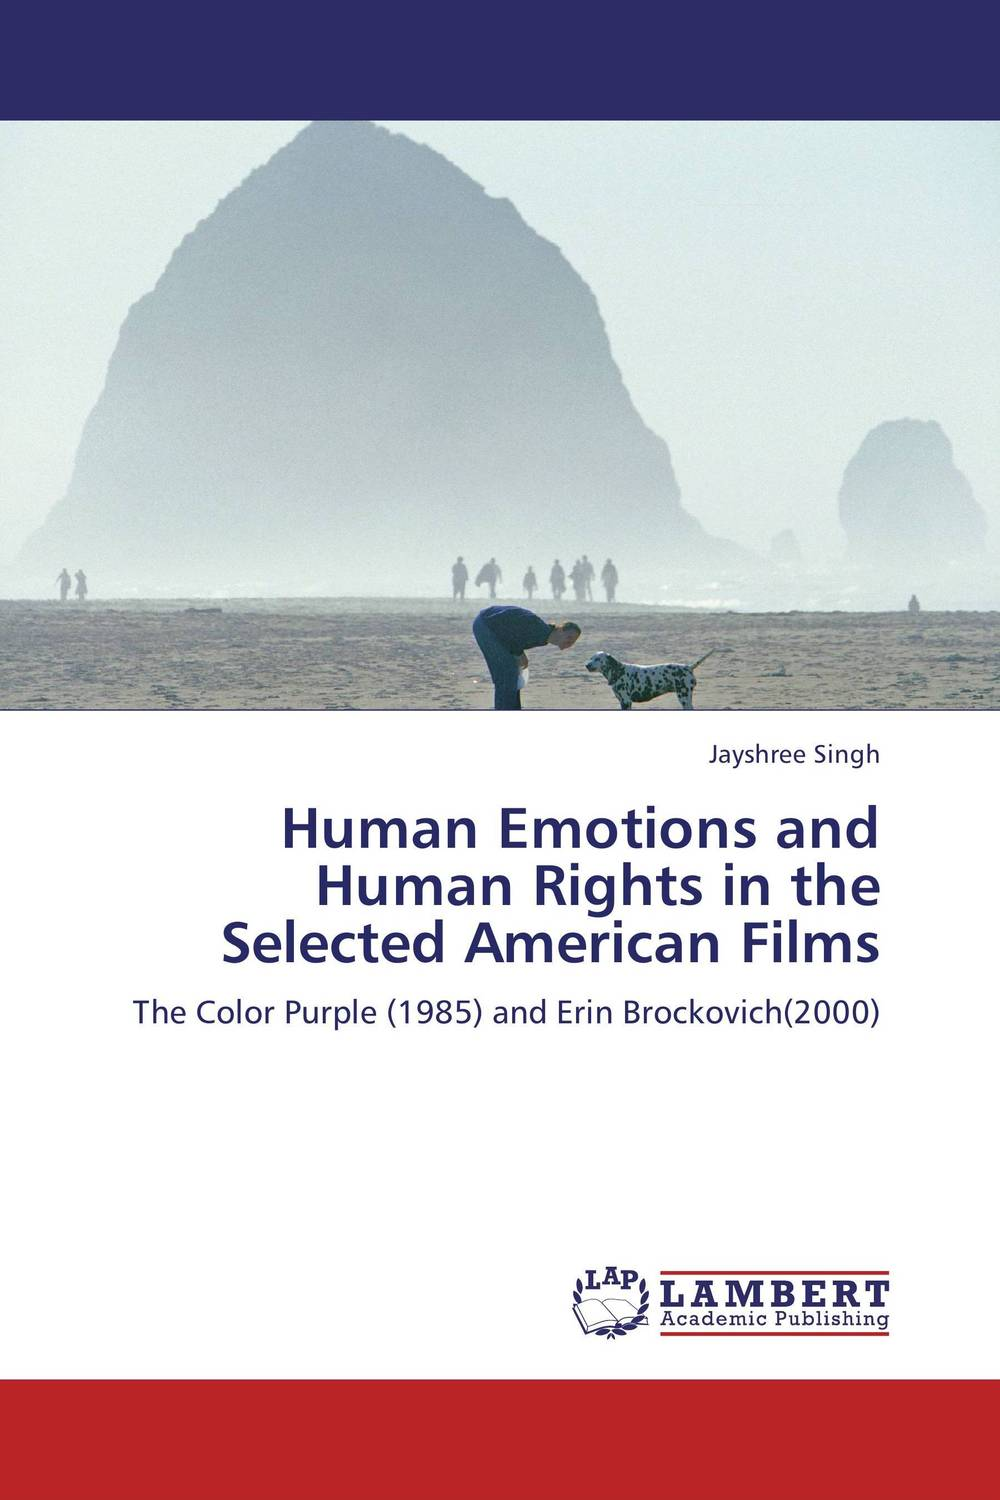 Human Emotions and Human Rights in the Selected American Films caleb williams or things as they are